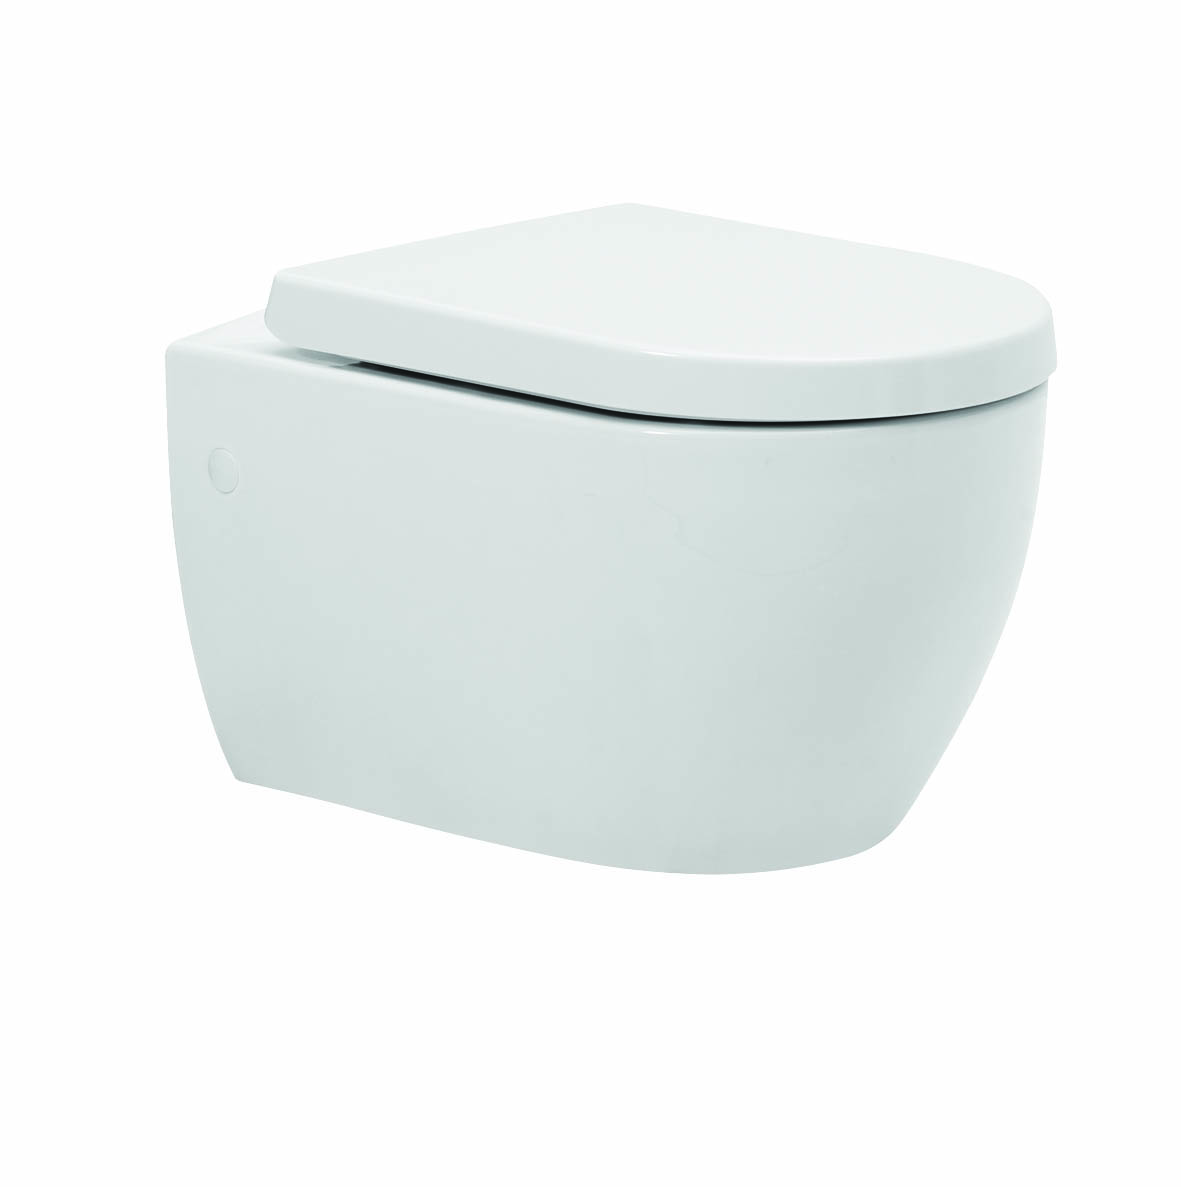 K-Vit Metro-K Wall Hung Pan (Seat Not Included)